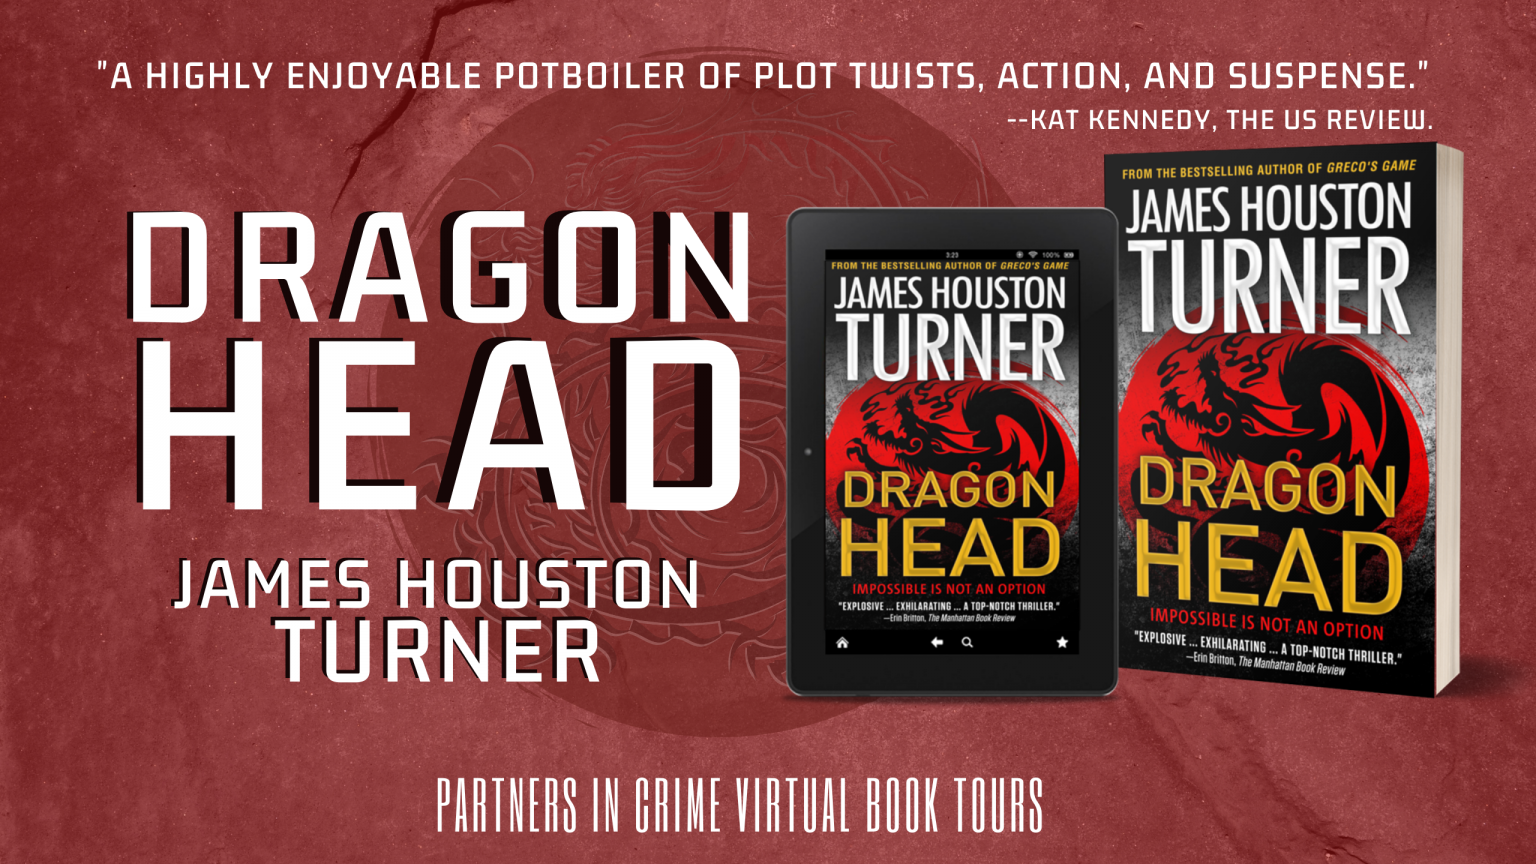 Dragon Head by James Houston Turner Banner